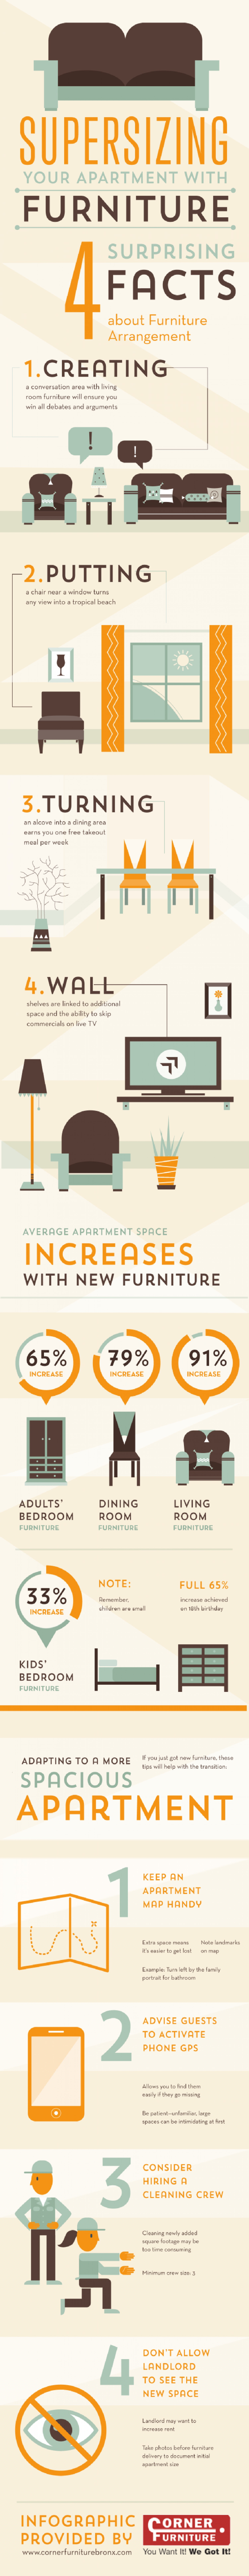 Supersizing Your Apartment With Furniture